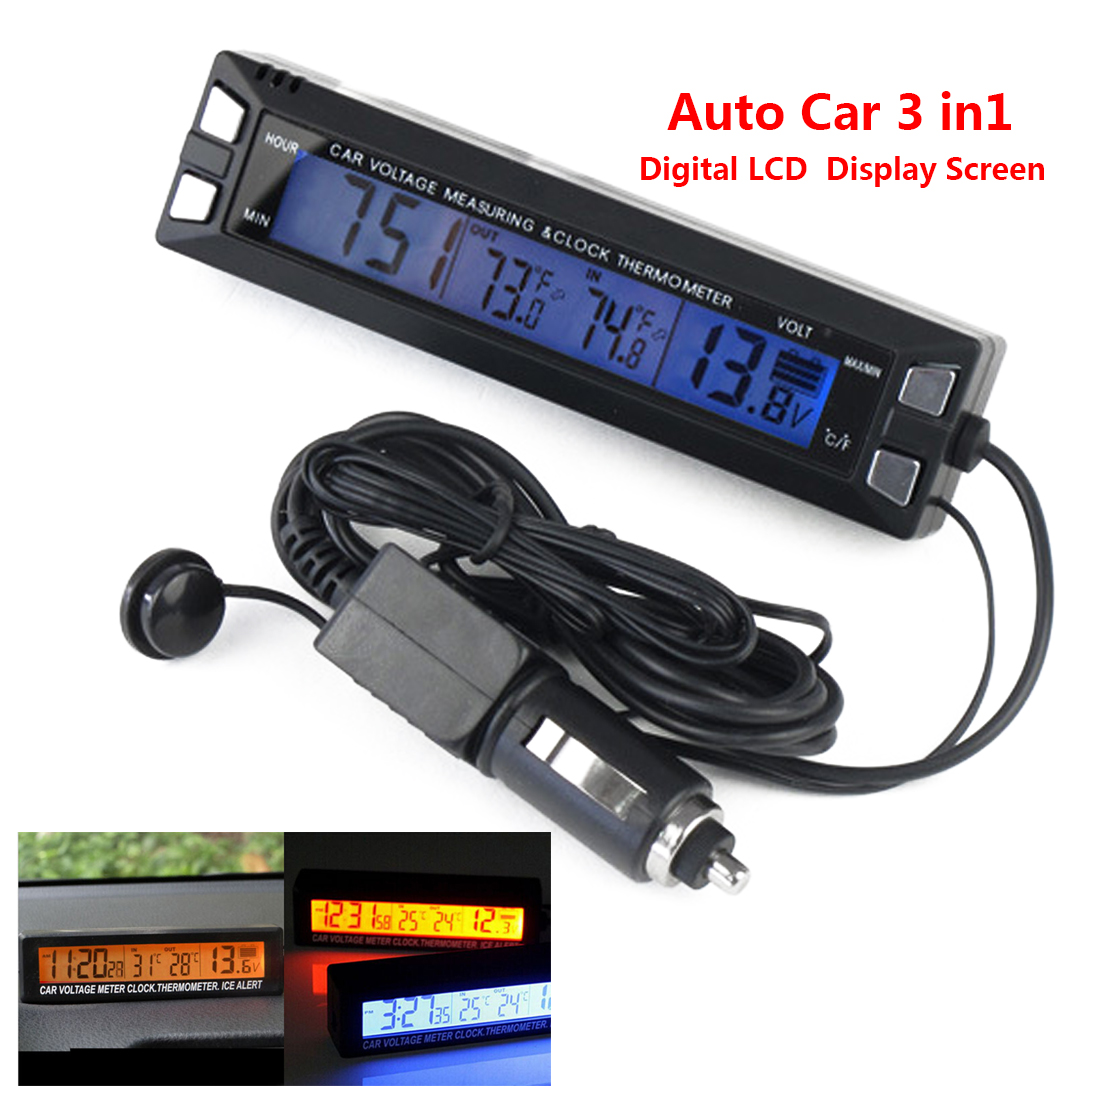 LCD Digital Auto Car 3in1 Clock Thermometer Temperature Monitor Meter In/Out Screen Battery Voltage Clock 3 in 1 multifunctional car digital voltmeter usb car charger led battery dc voltmeter thermometer temperature meter sensor